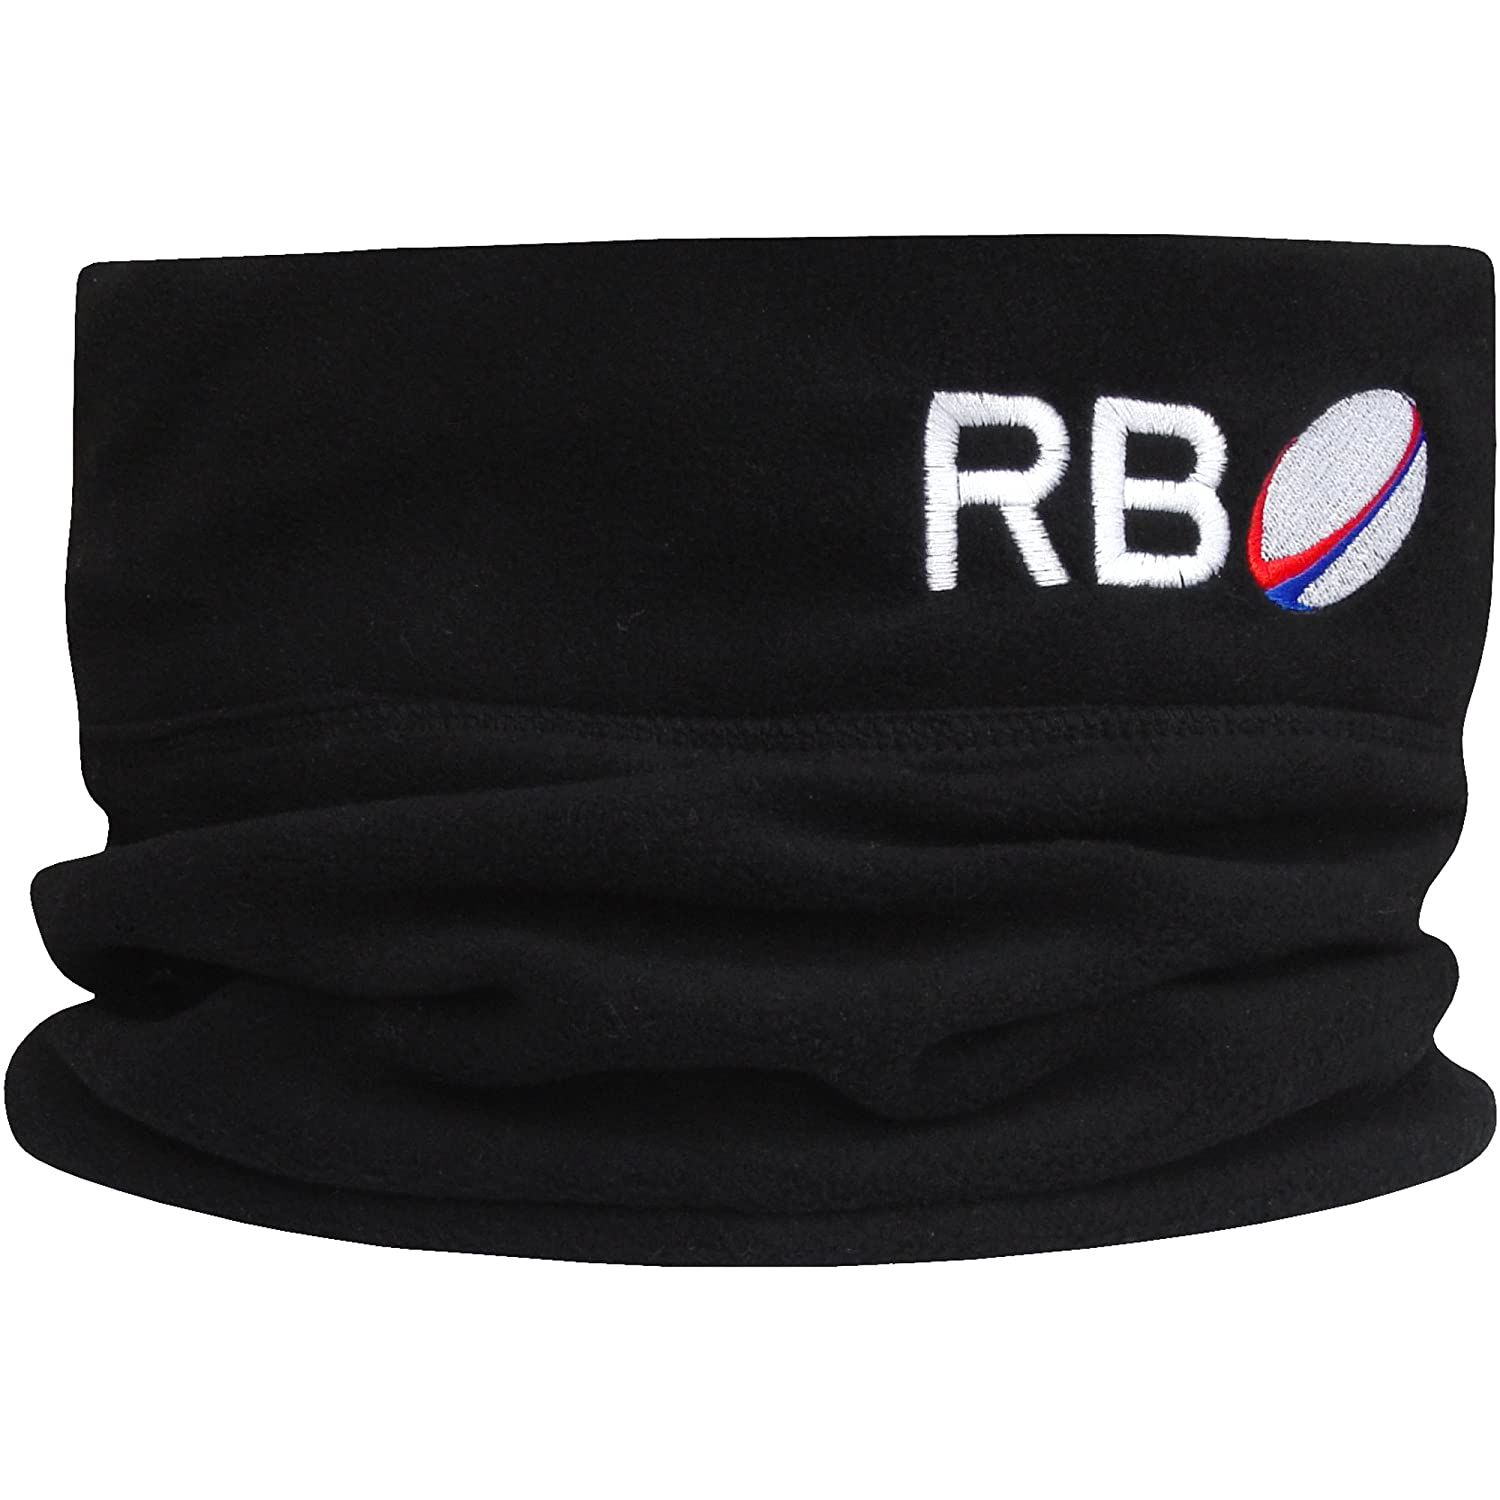 Boy's Personalised Rugby Initials Black Fleece Sports Snood with Adjustable Toggle